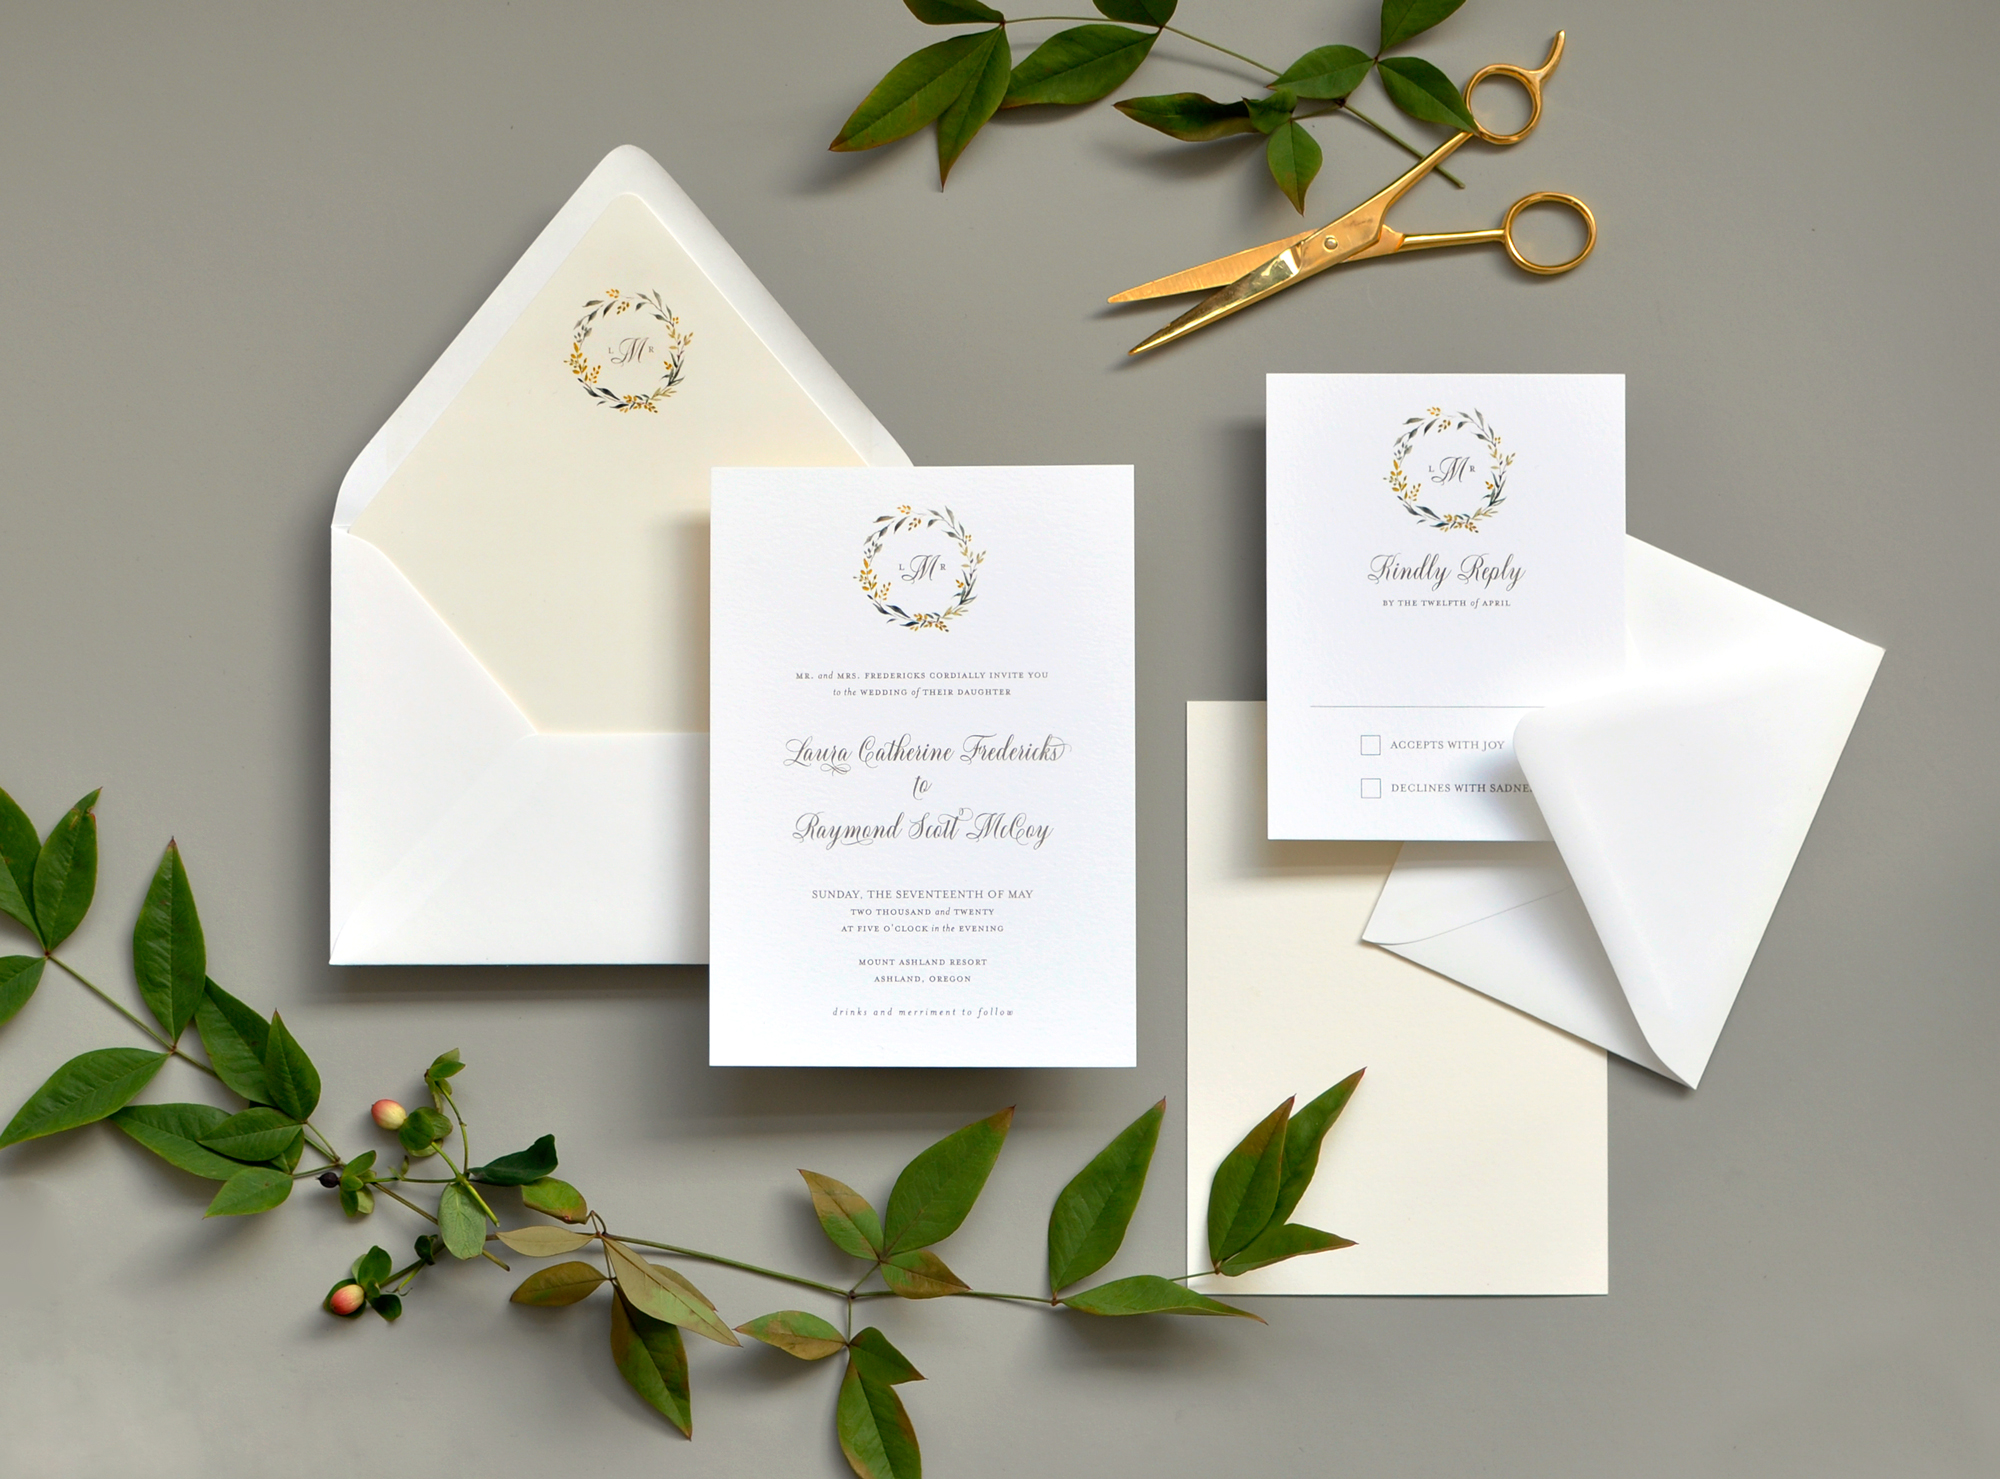 A pale yellow and greenery floral wreath circles a monogram at the top of this simple, yet sweet botanical wedding invitation.